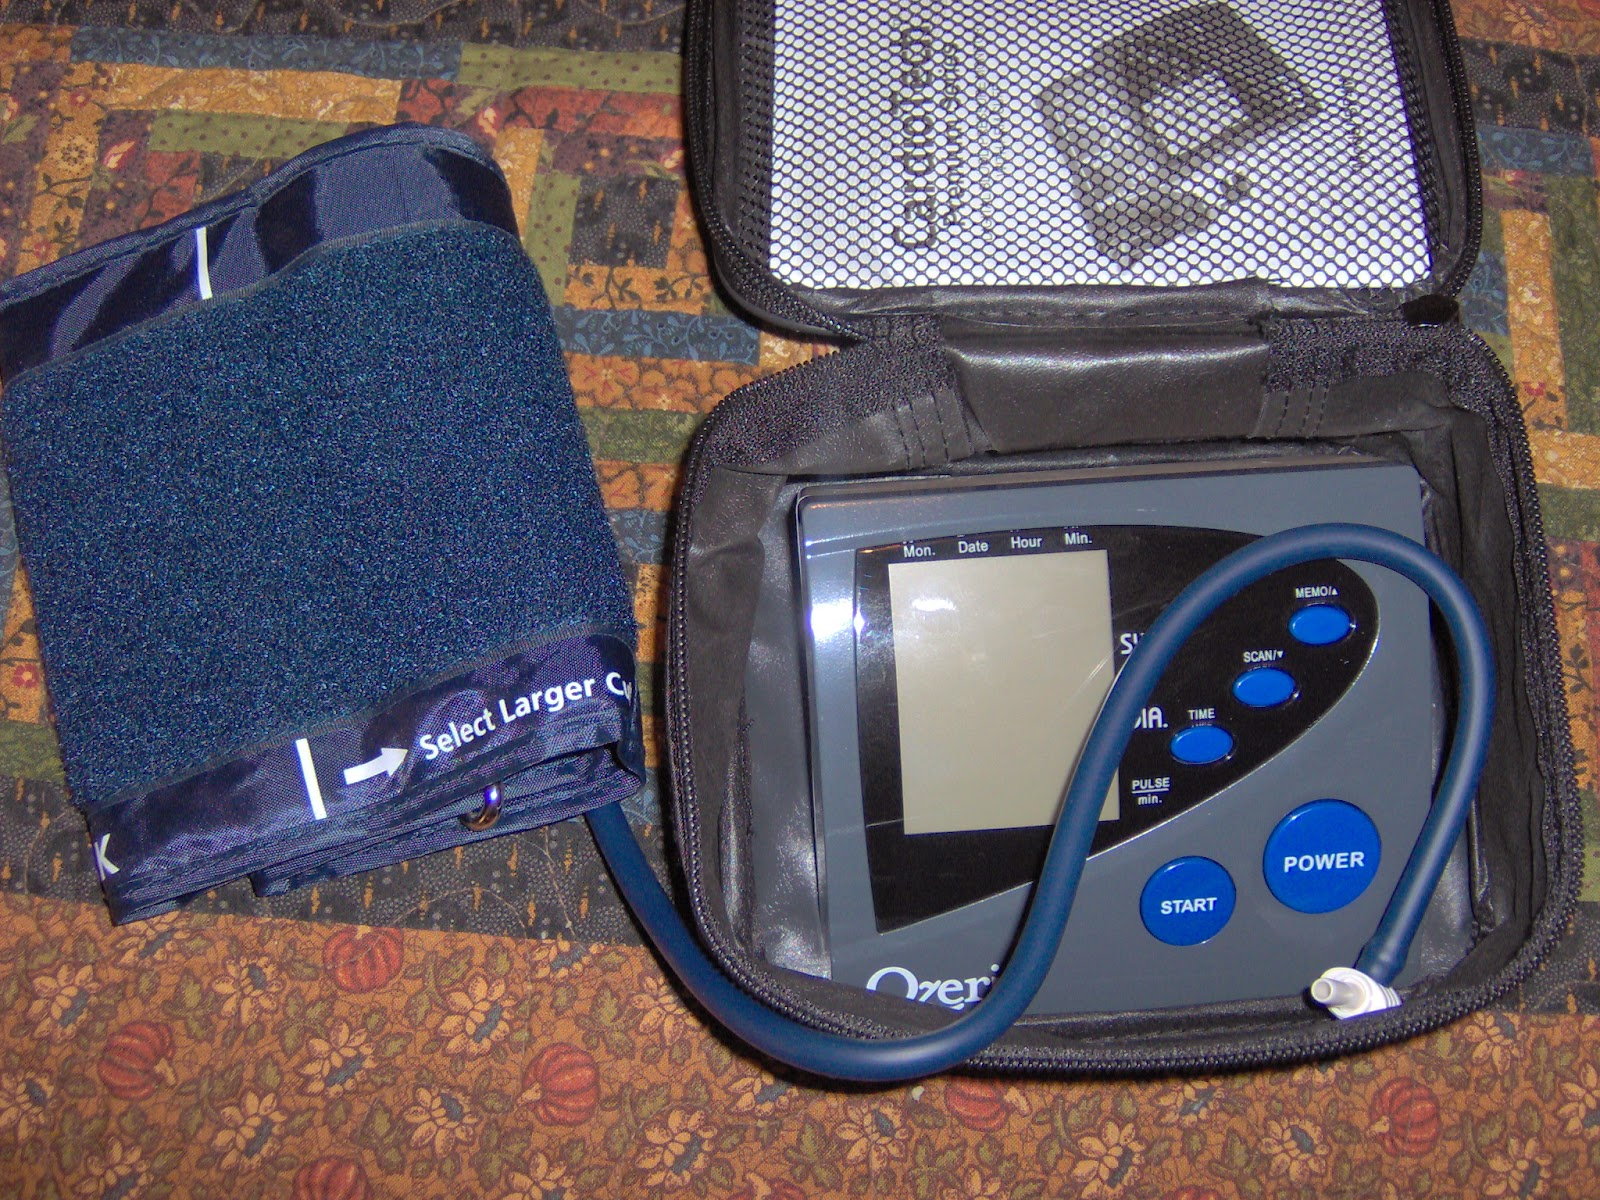 Ozeri Cardio Tech Premium Series Digital Blood Pressure Monitor Review